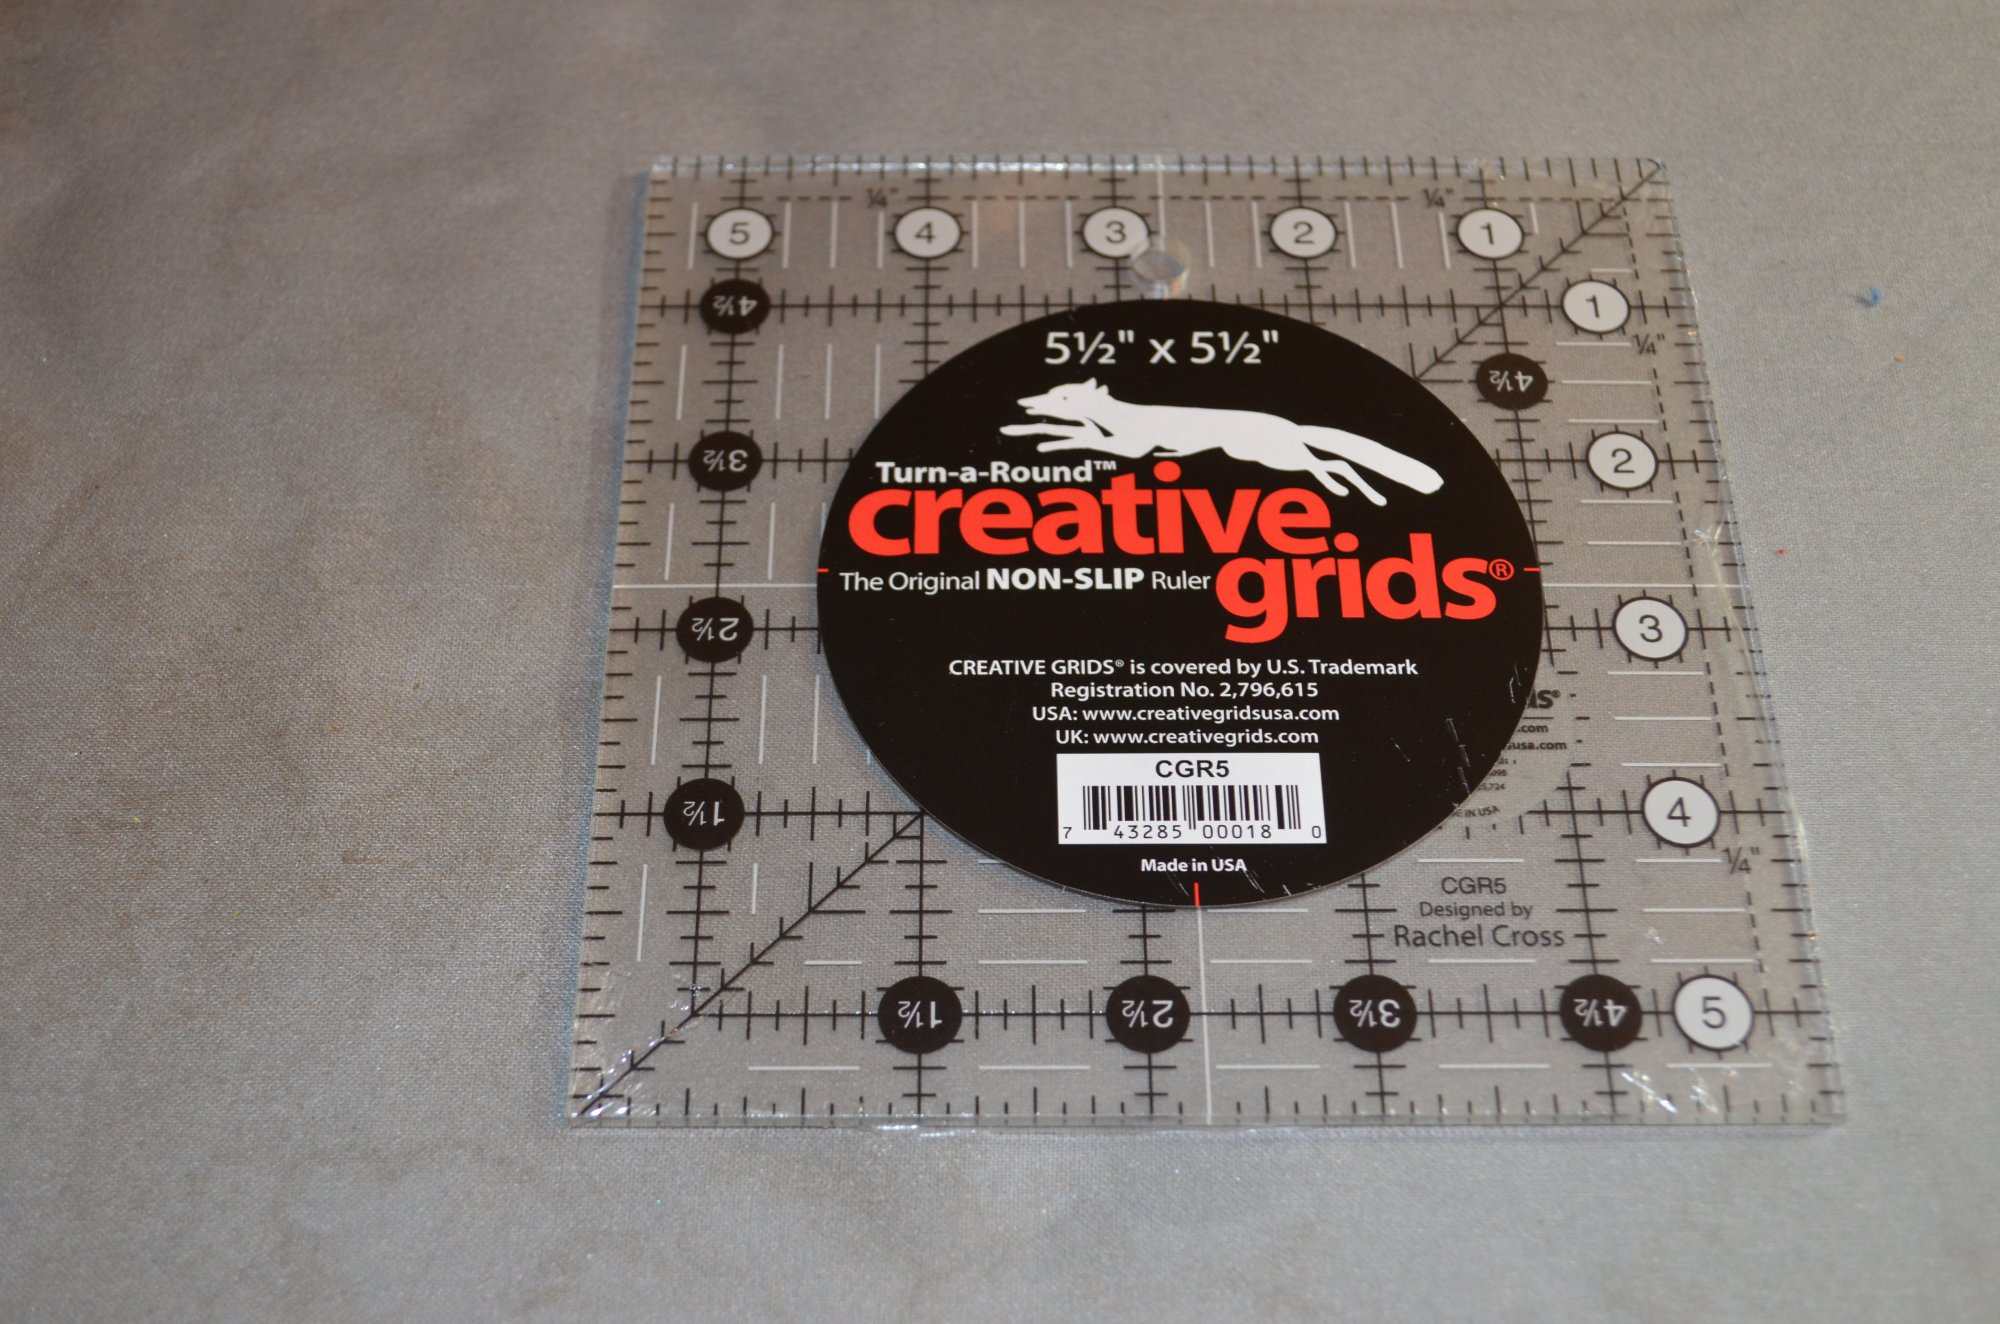 Creative Grids 5.5 X 5.5 Ruler CGR5